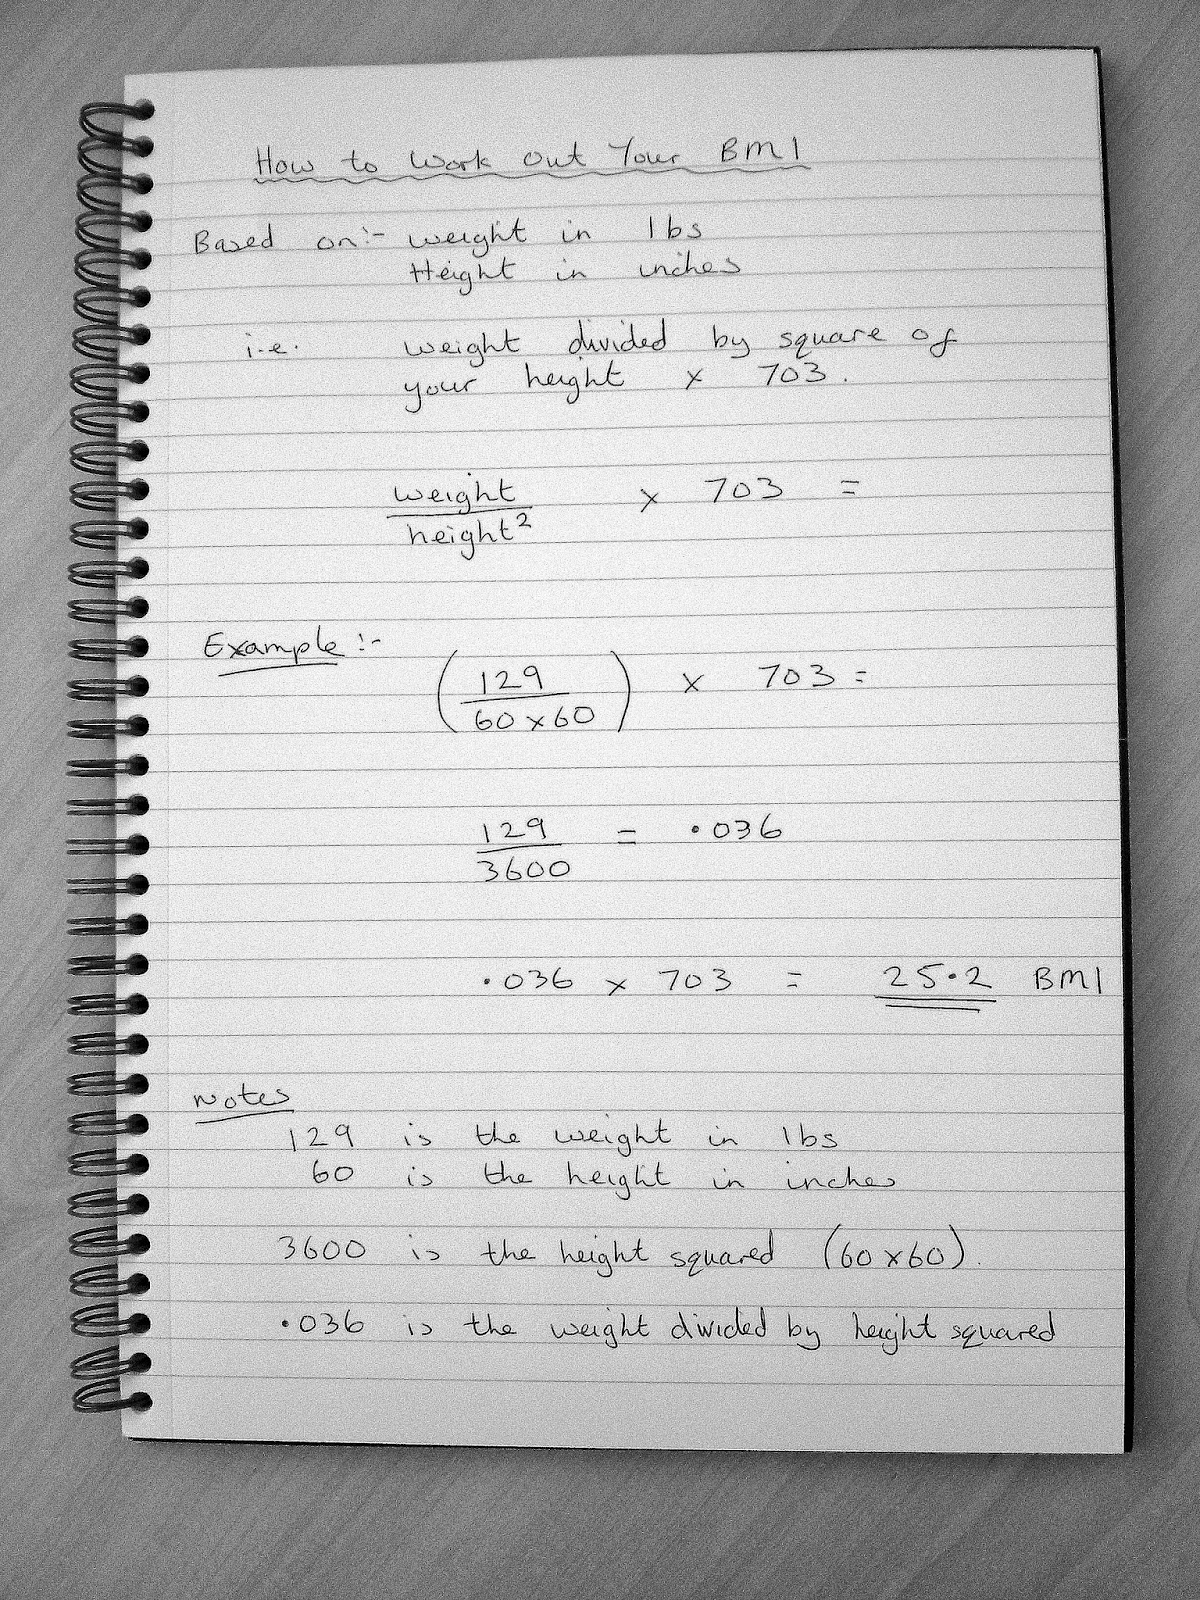 How To Calculate Your Bmi Equation